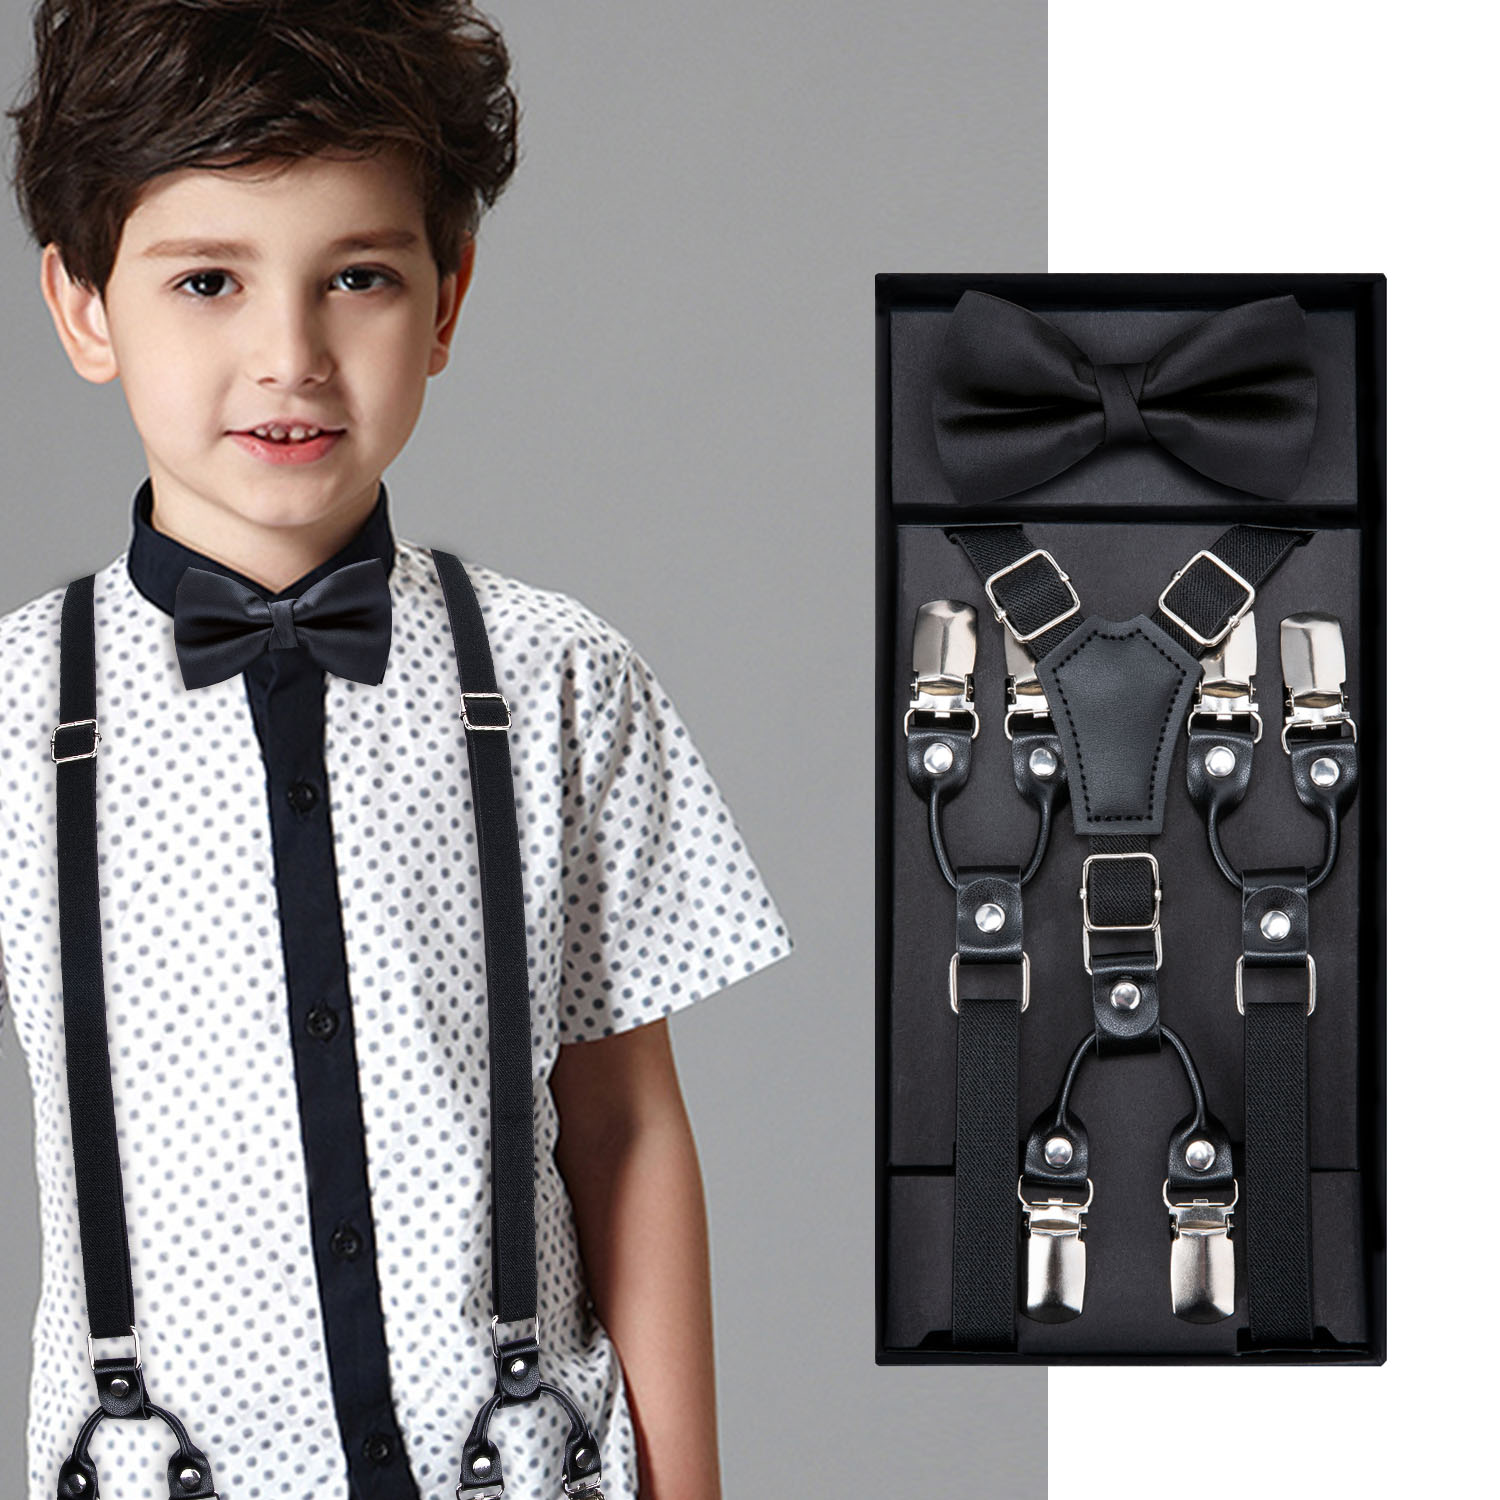 Kids Black Bow Tie Elastic Suspenders Boys Girls Wedding Suspender Set Children Adjustable Leather Y-Back Brace Belt DiBanGu